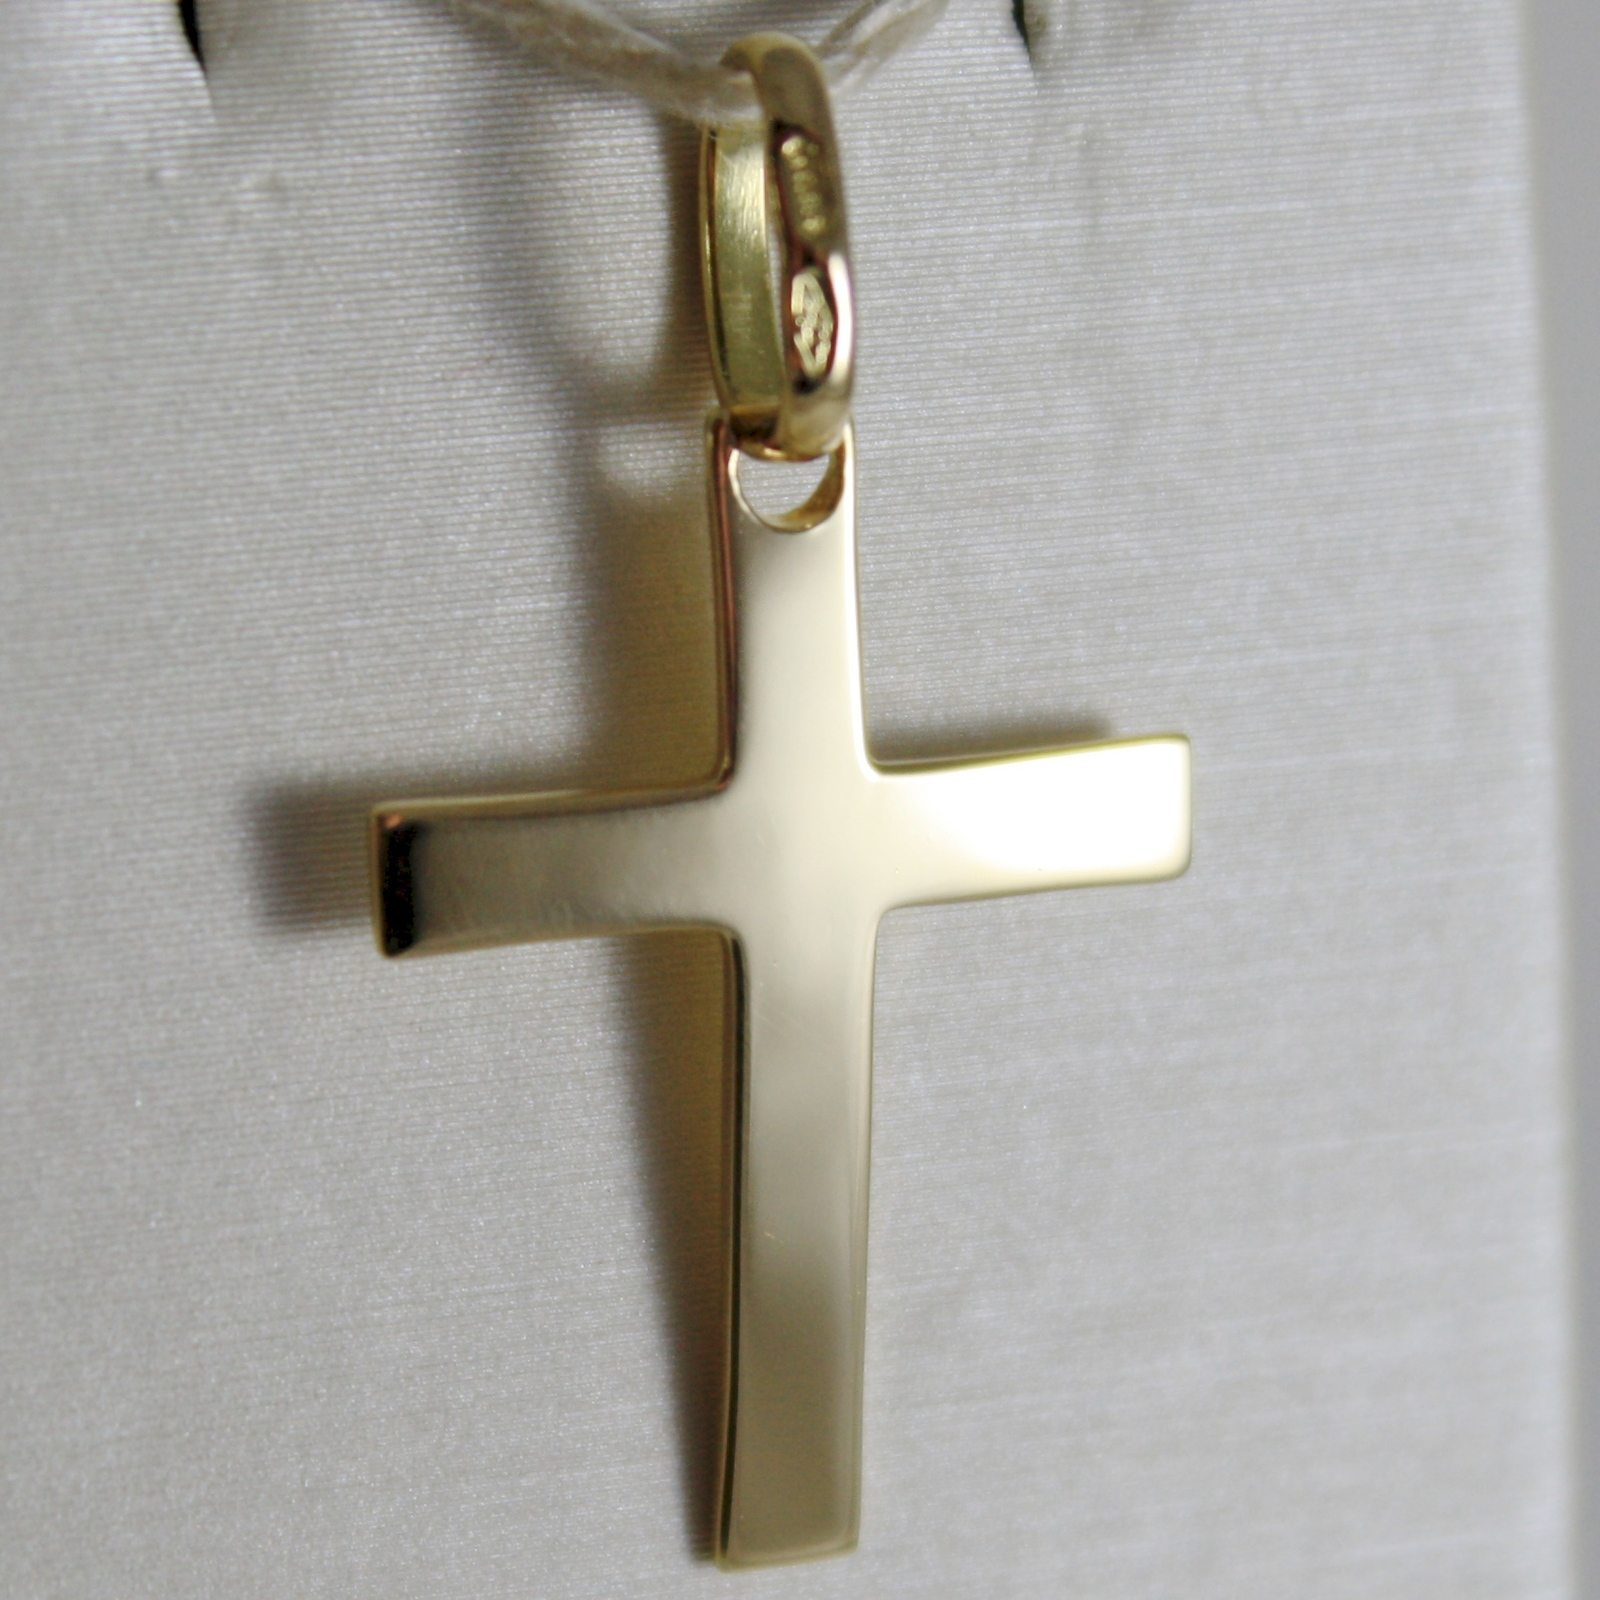 SOLID 18K YELLOW GOLD FLAT CROSS SQUARED ARCHED, SMOOTH, LUMINOUS, MADE IN ITALY